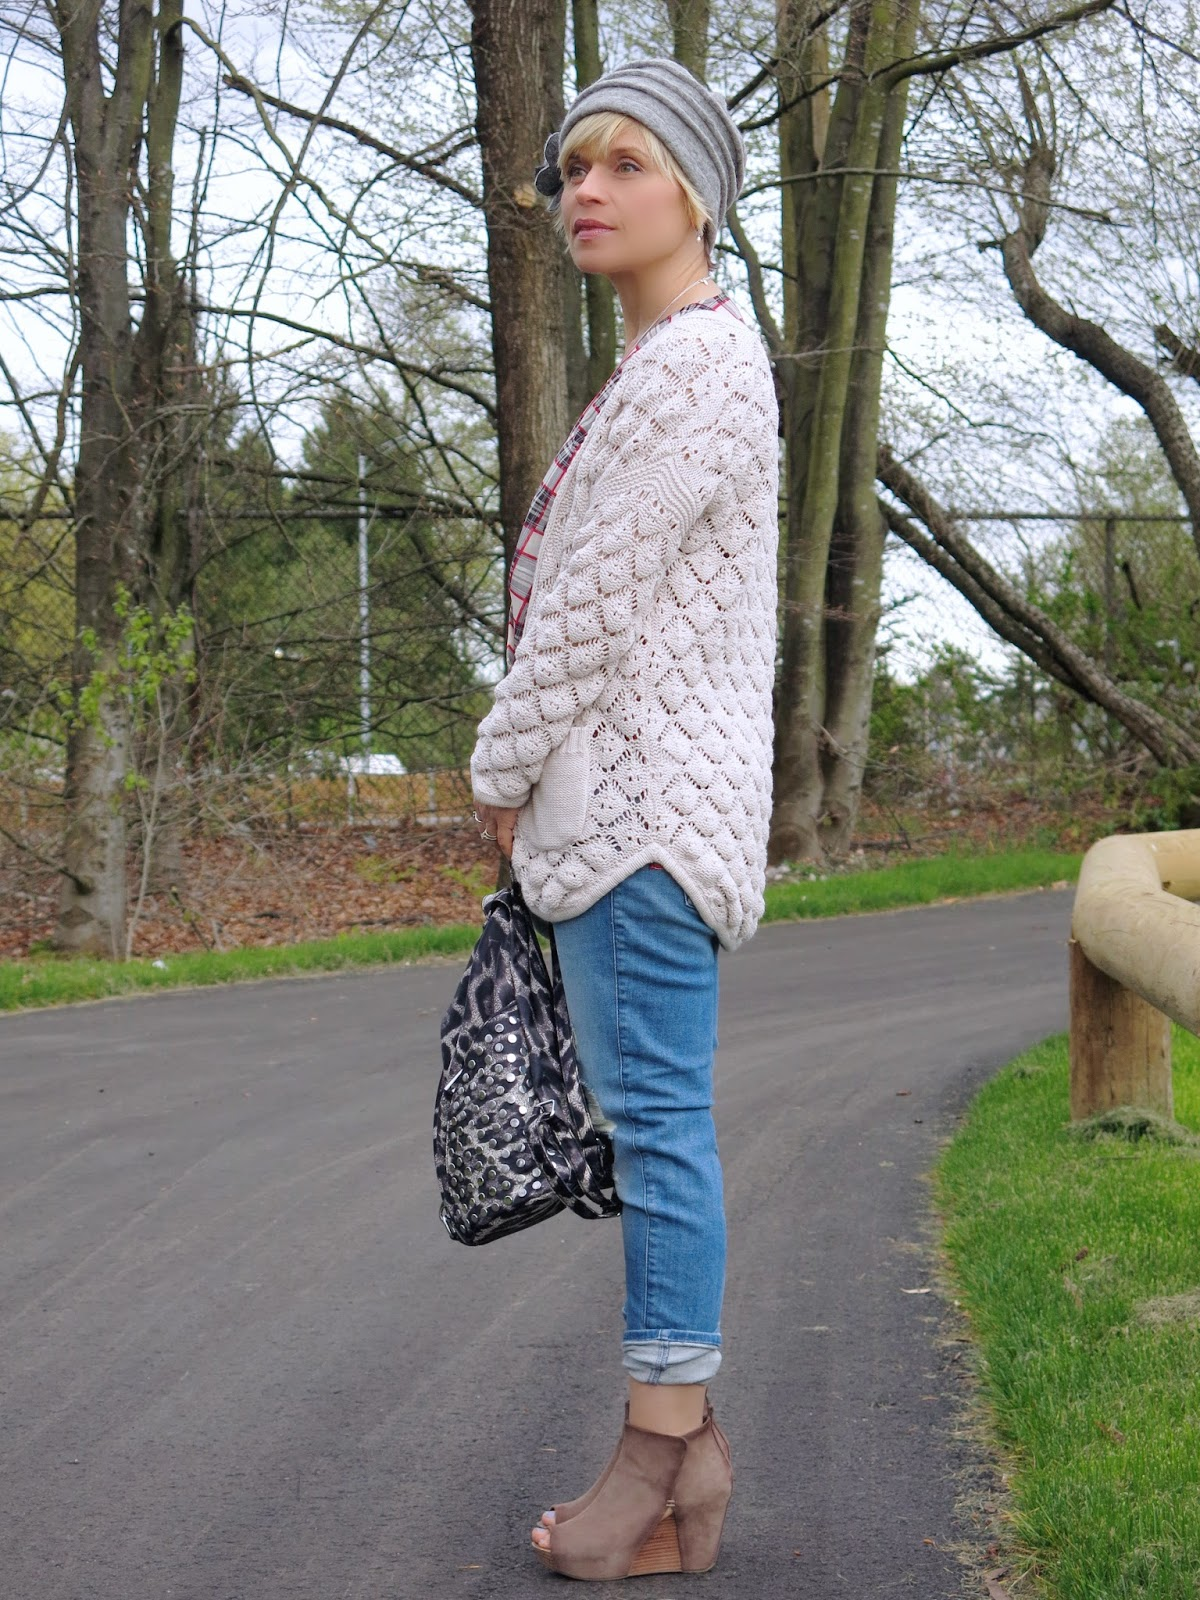 boyfriend jeans styled with a plaid top, grandpa cardigan, and felt-flower hat